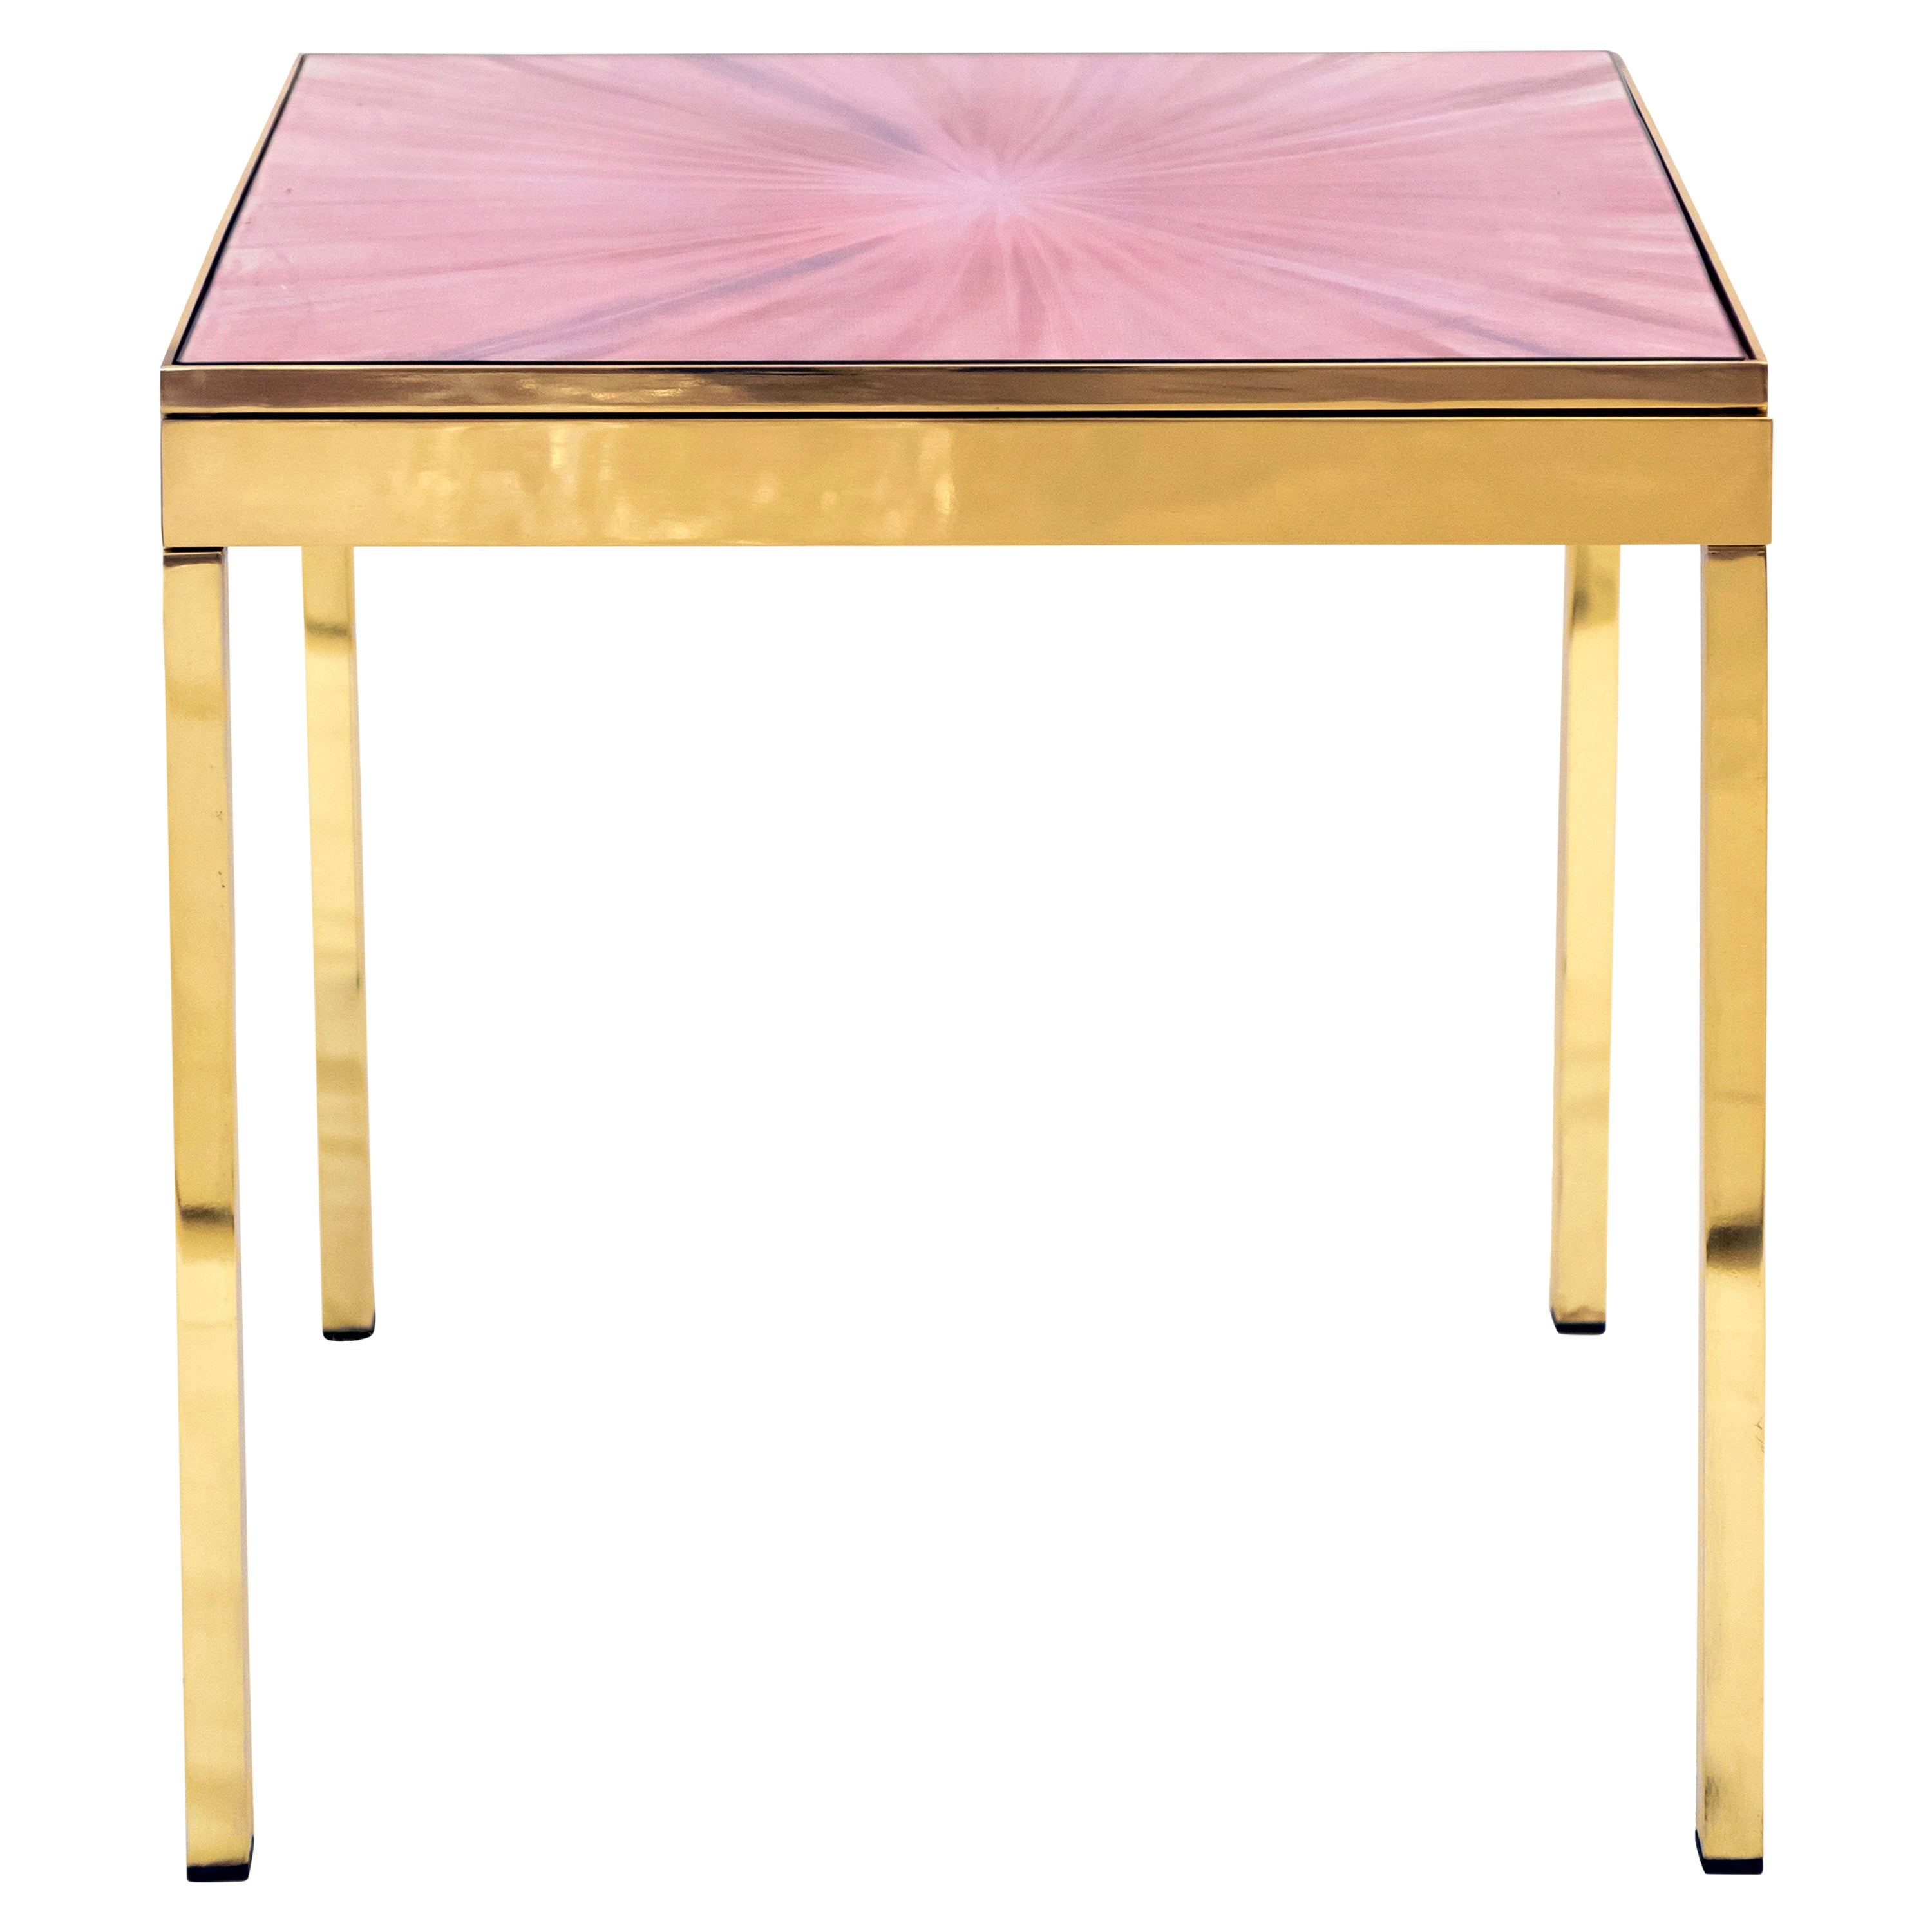 The Rays II Pink Brass Bedside Table by Allegra Hicks